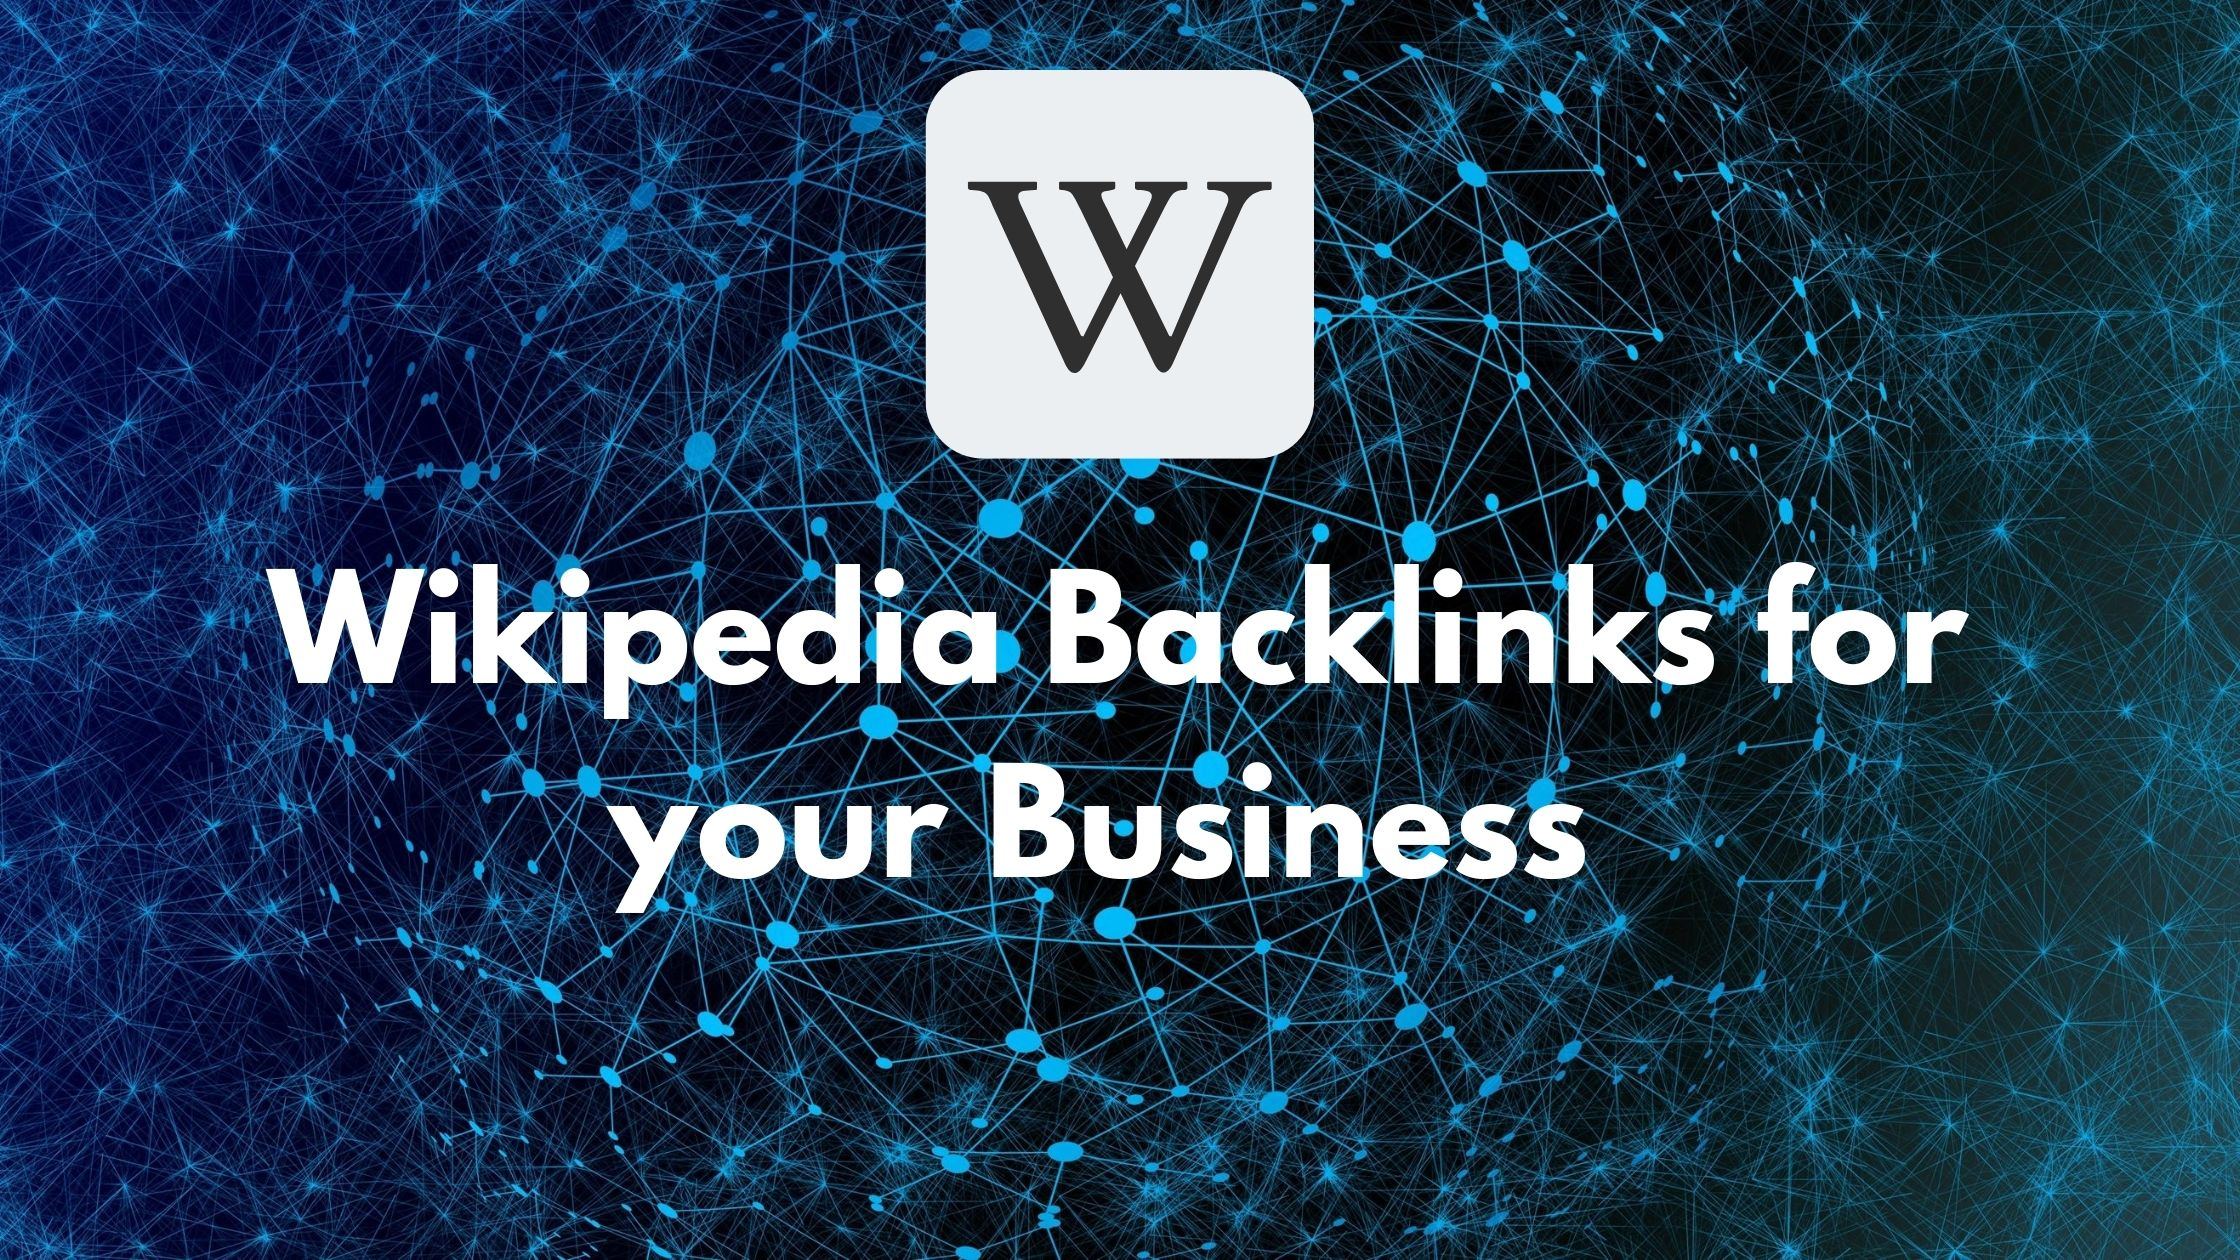 Wikipedia Backlinks for your website